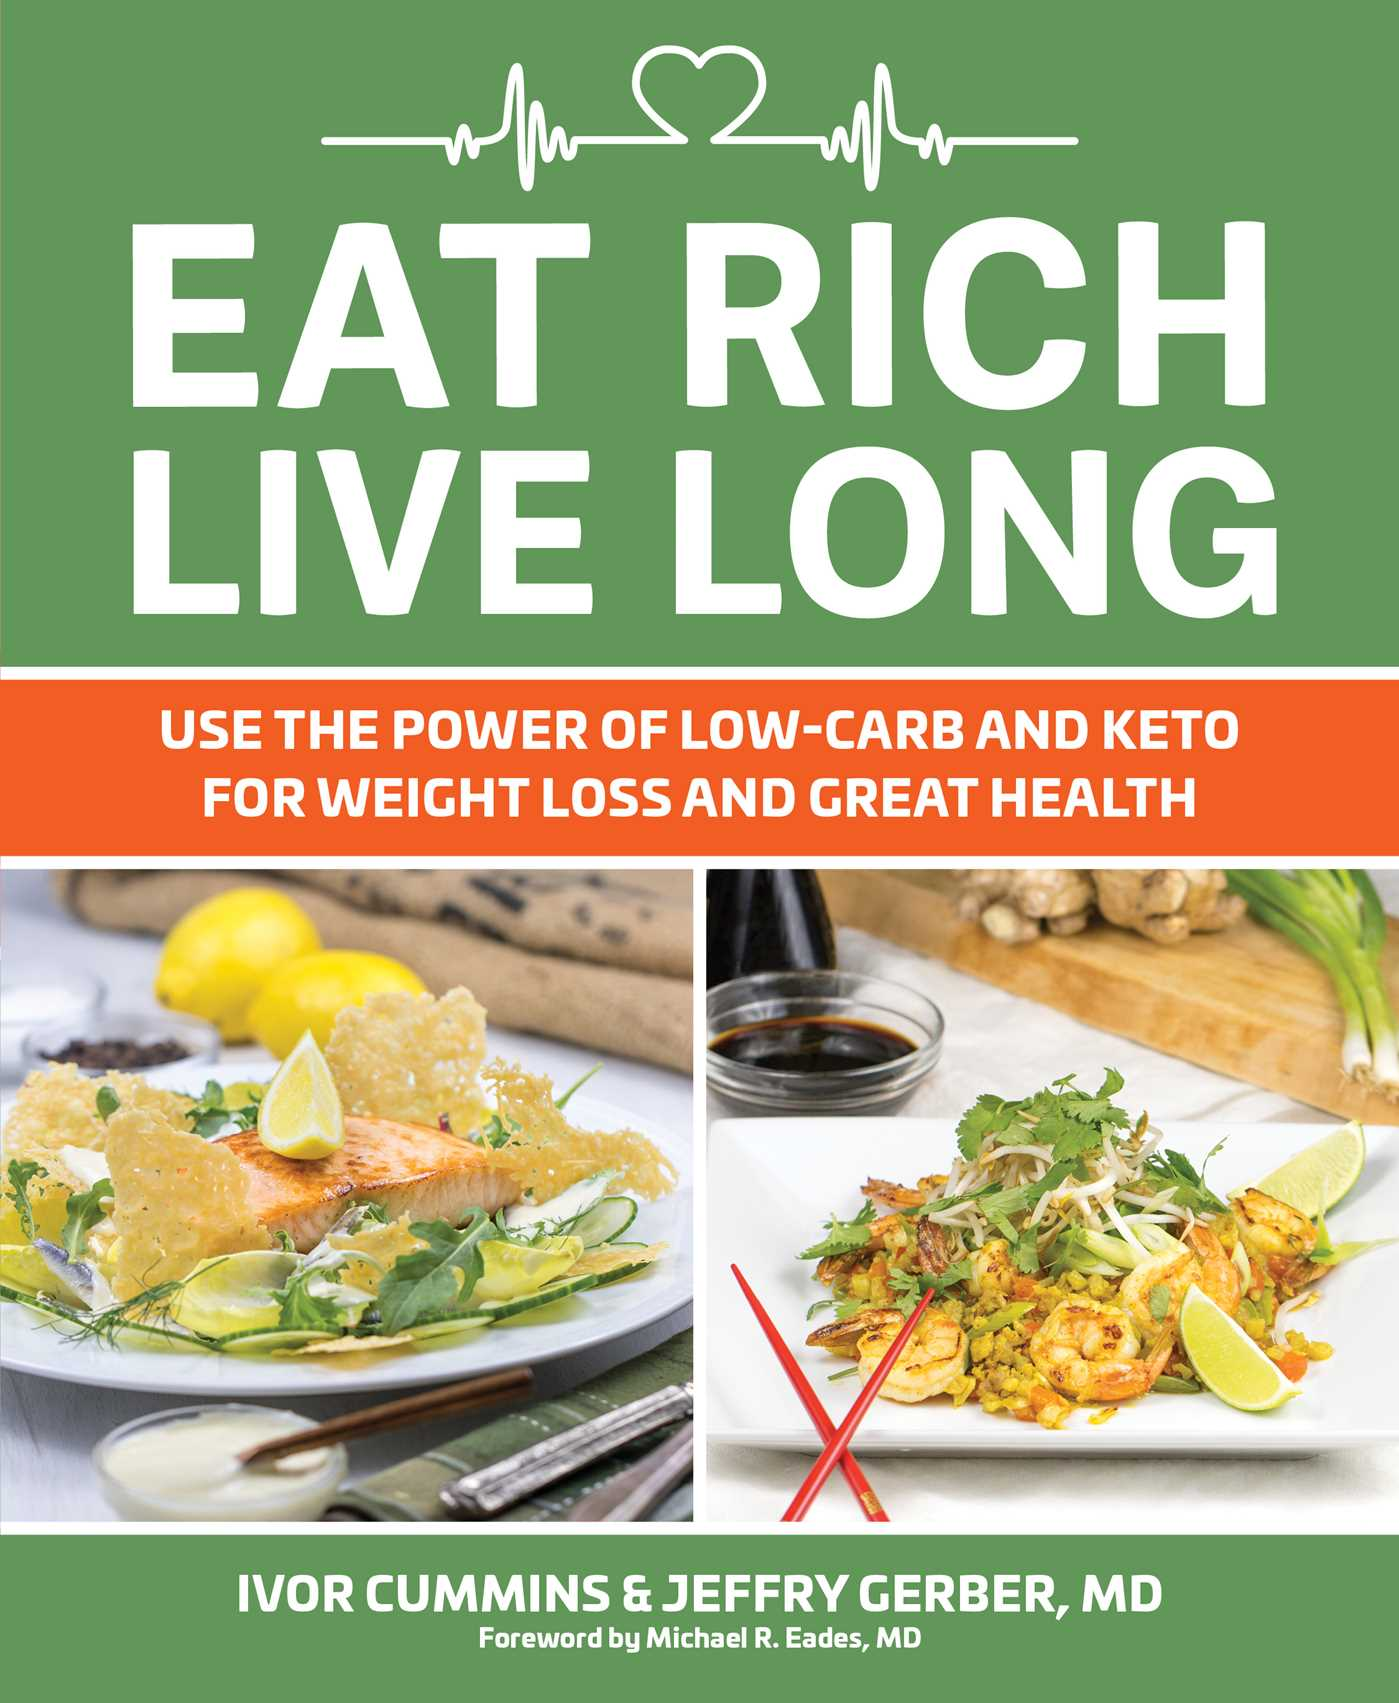 Eat rich live long 9781628602739 hr